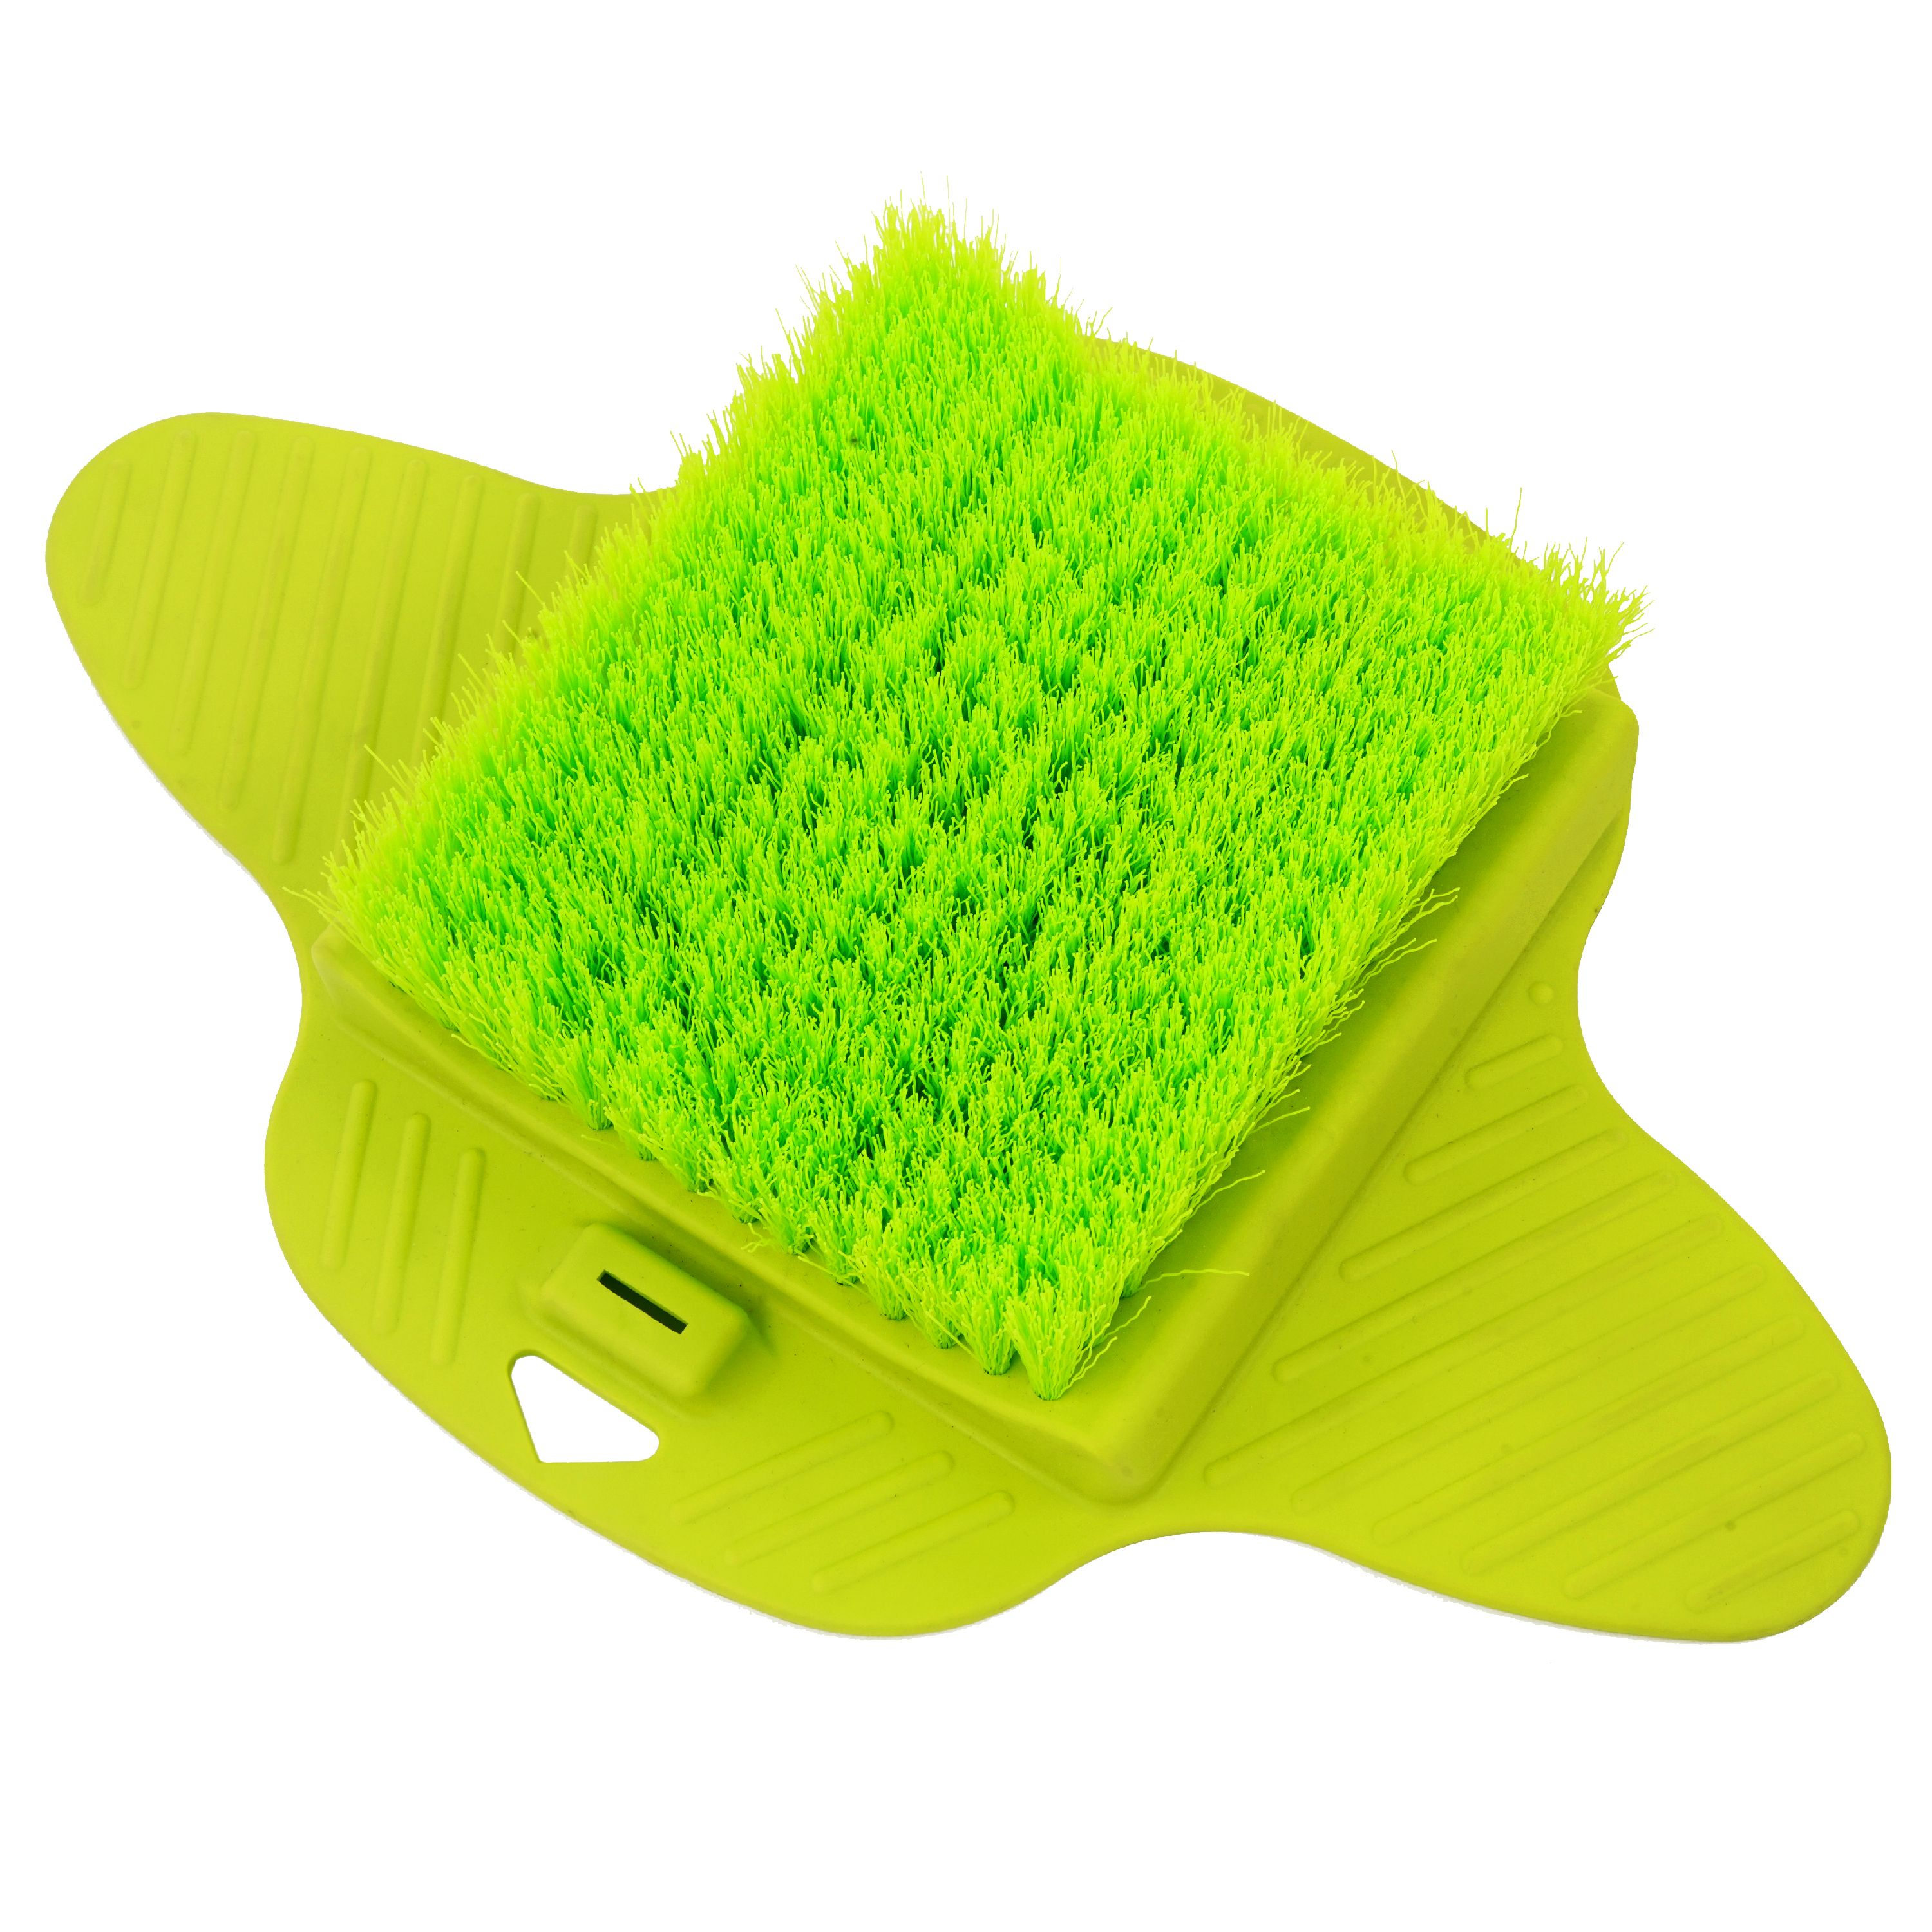 Best Foot Scrubbers - AURORA Foot Brush Scrubber Green 14Lx4.5Wx13H List Review